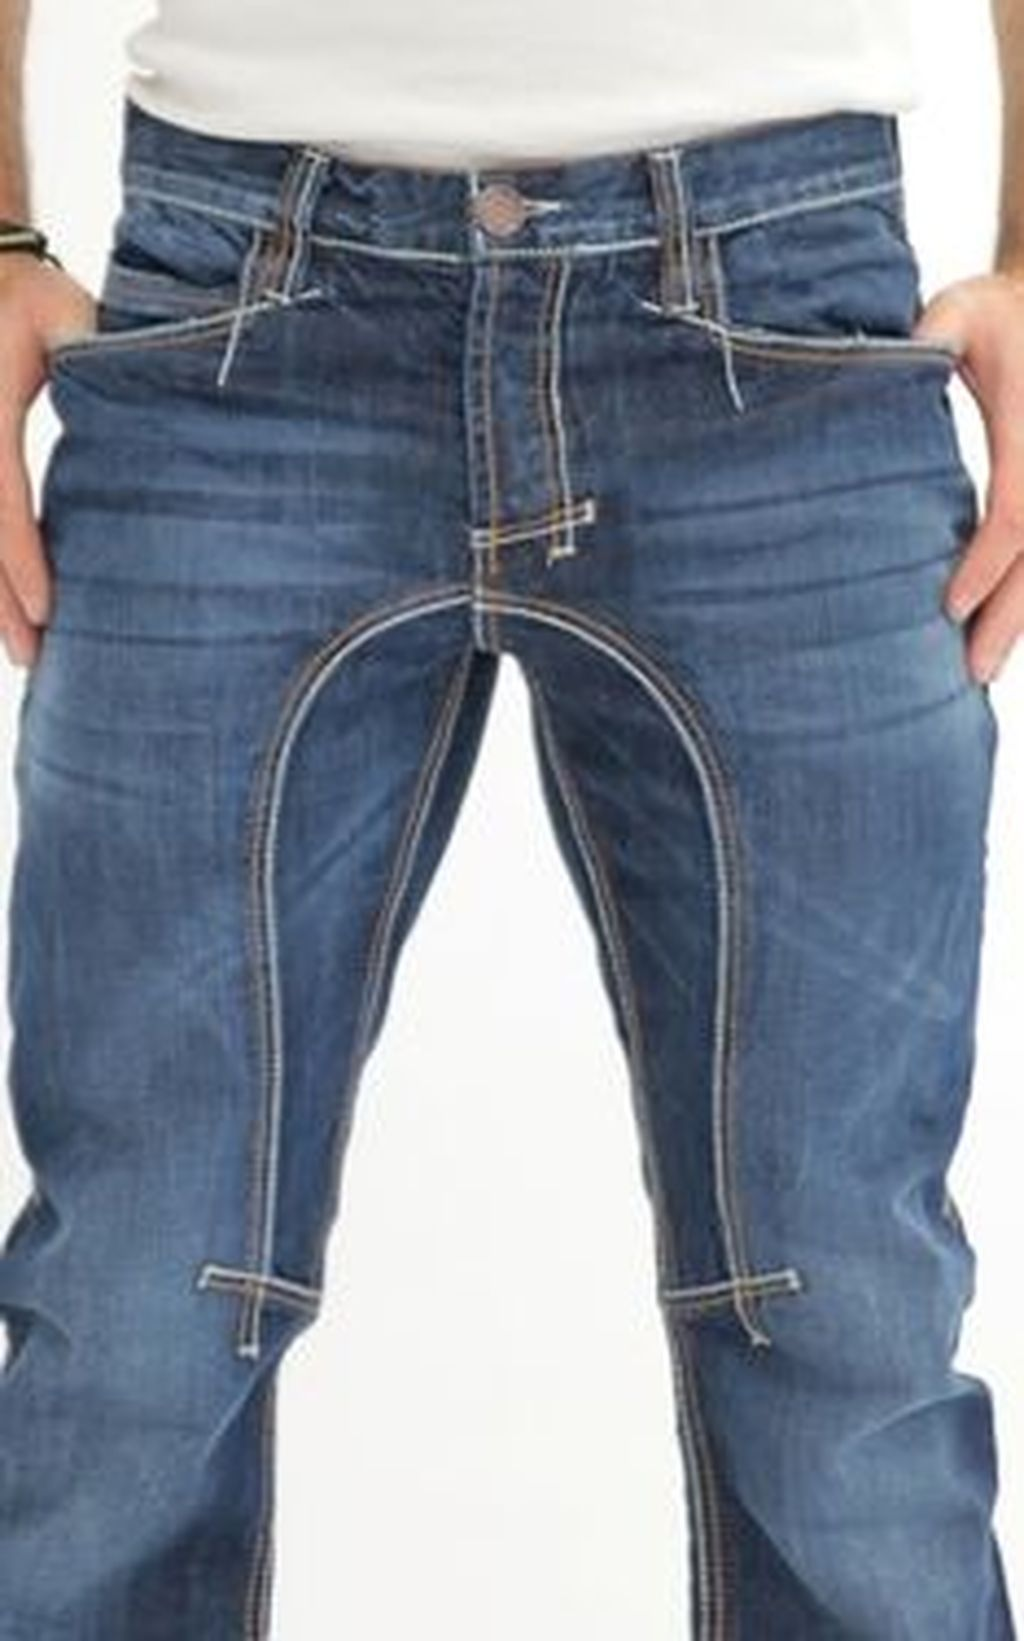 Slim down the jeans cut off the extra fabric and the pattern is legit CIPO    Street styles   Jeans, Mens fashion, Ripped jeans men fbcfe0b567